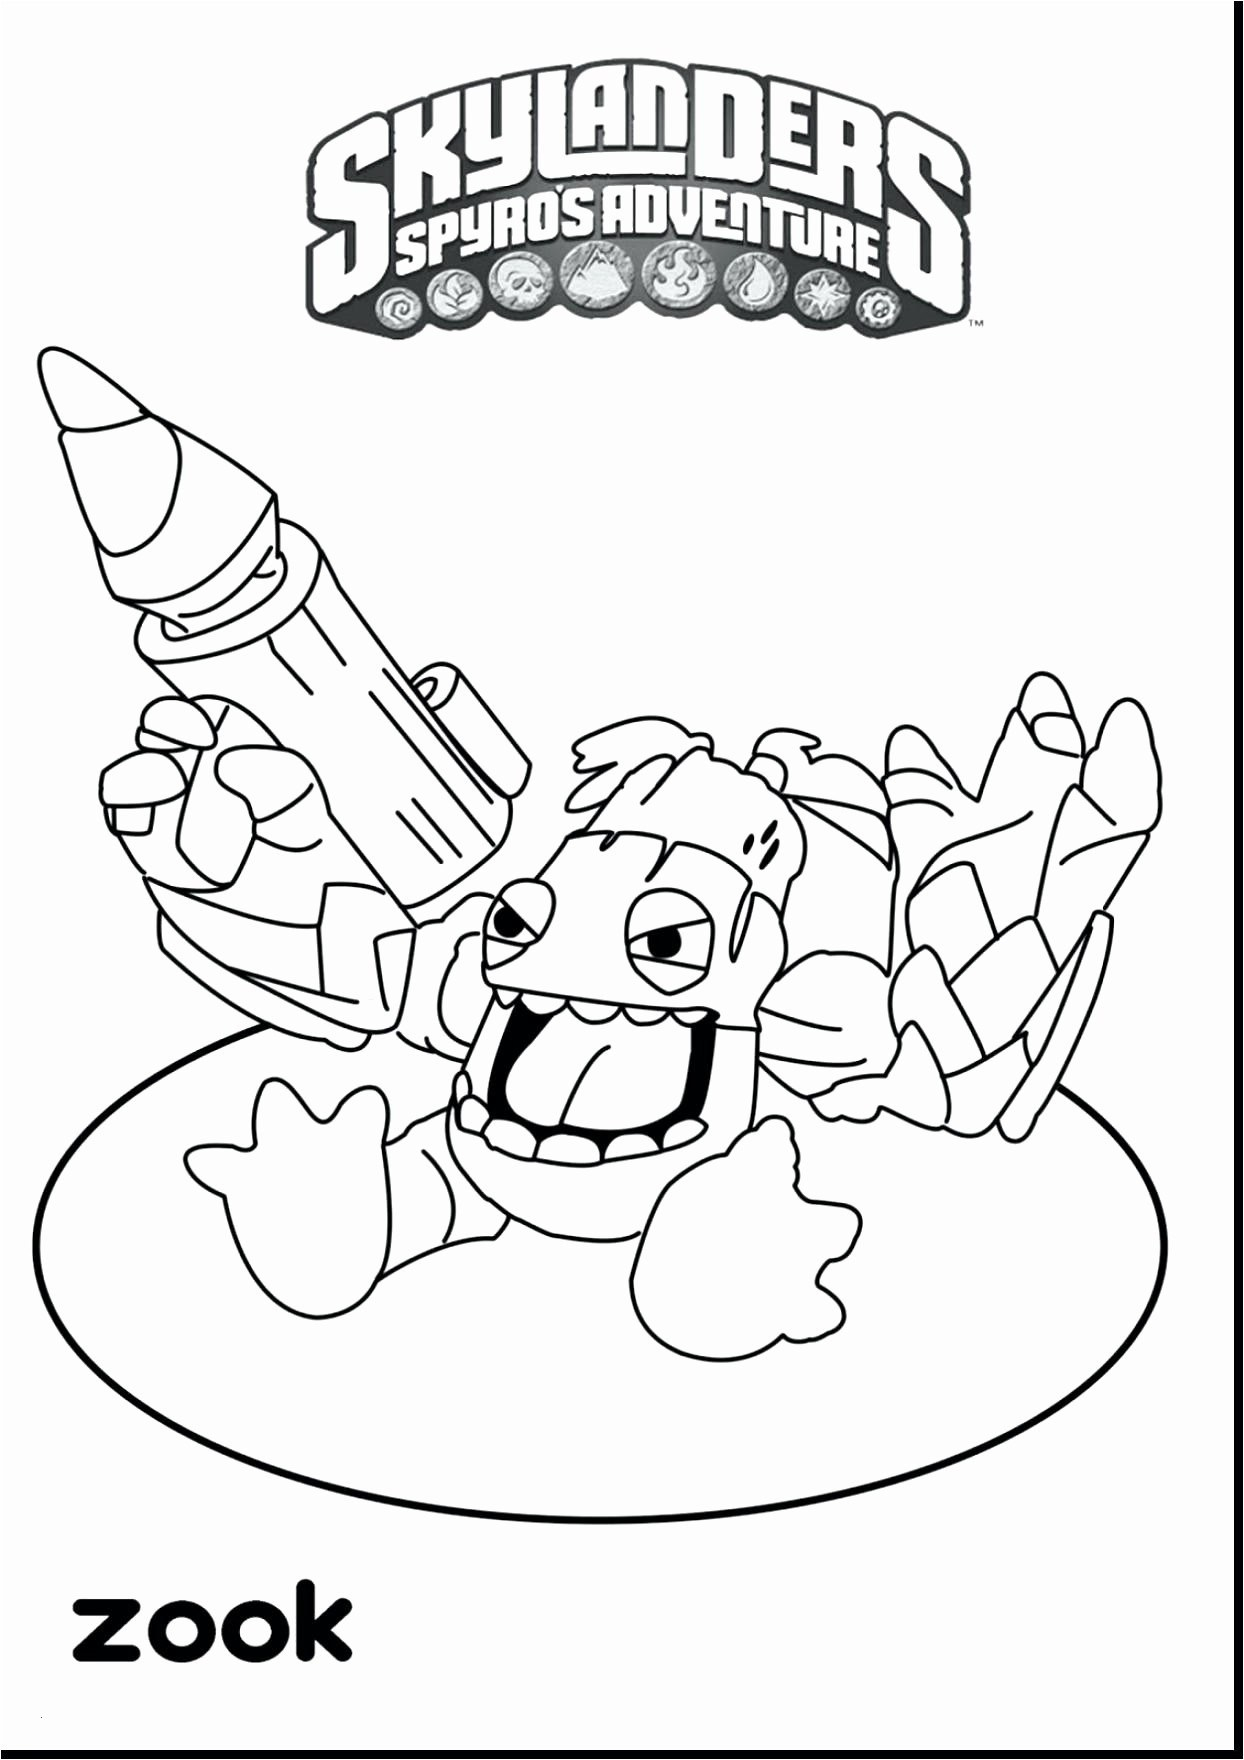 fathers day coloring pages printable Collection-Free Mothers Day Coloring Pages Mothers Day Coloring Pages for Preschool 21csb 8-p